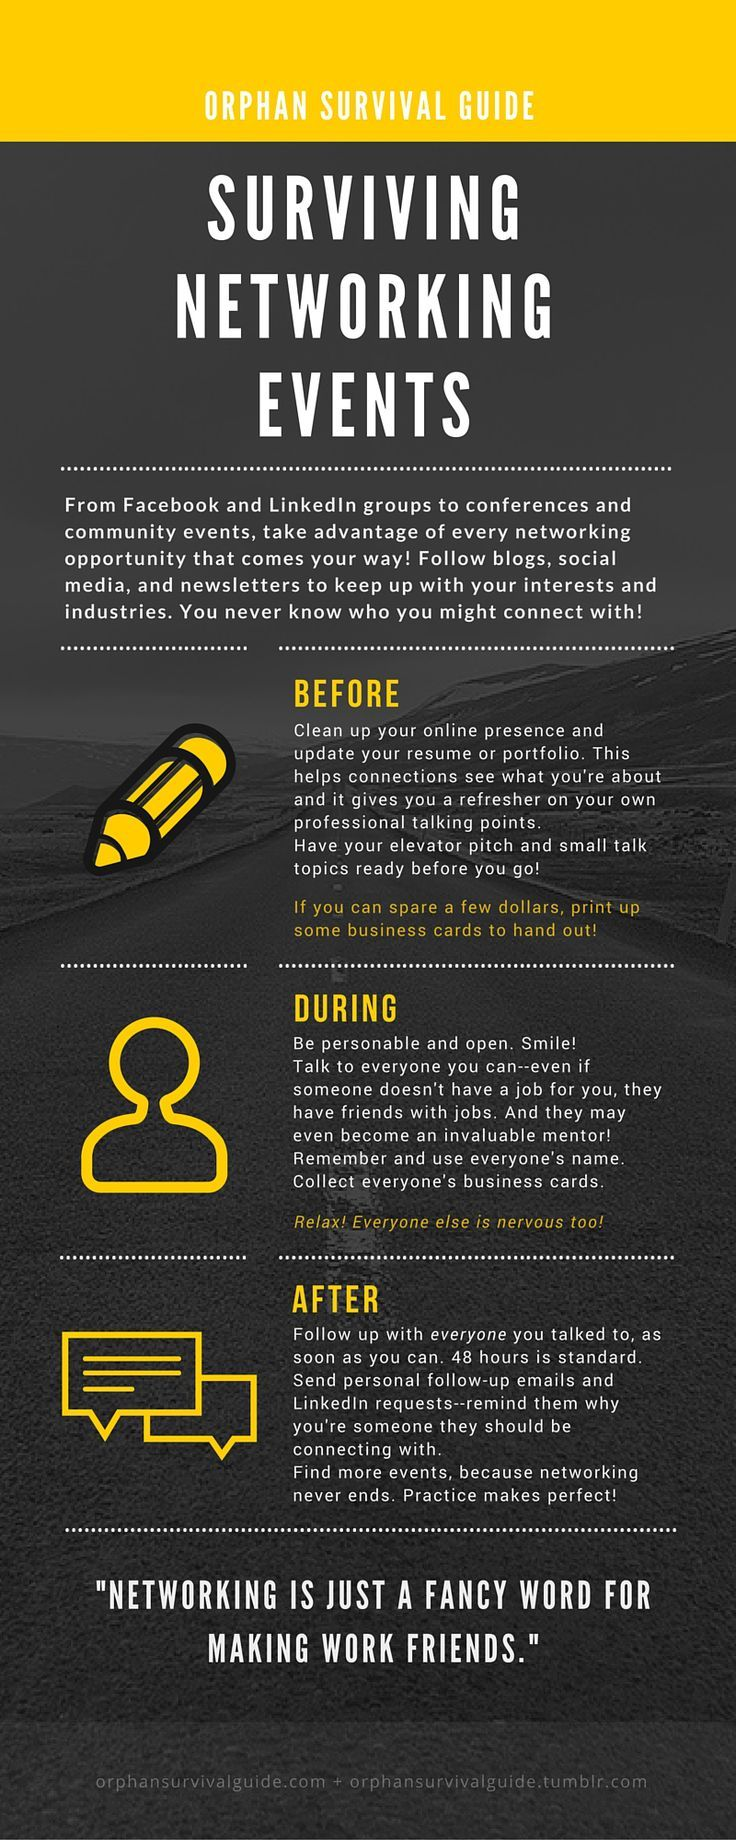 orphan survival guide - surviving networking events tips infographic ...